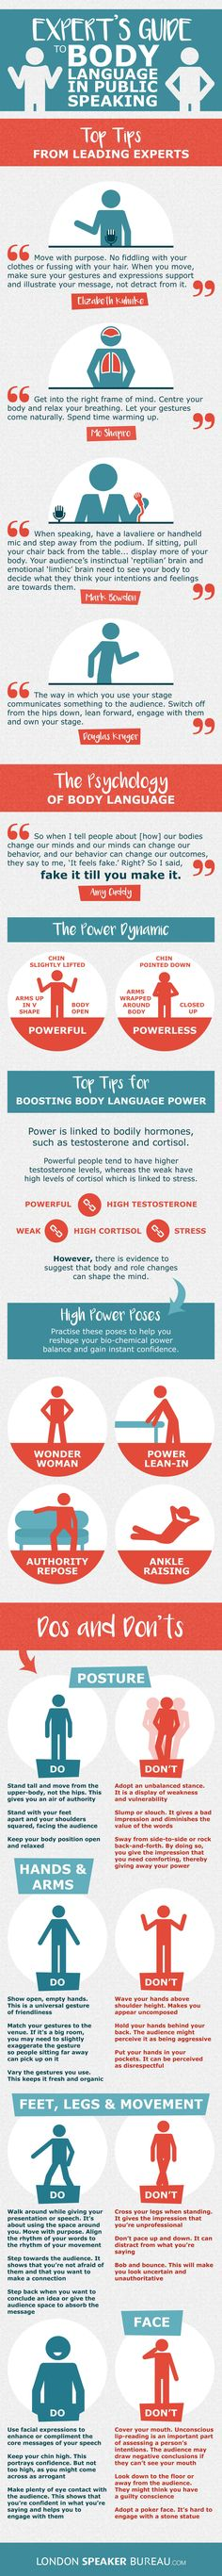 Expert's Guide to Body Language In Public Speaking #Infographic #Communication #PublicSpeaking